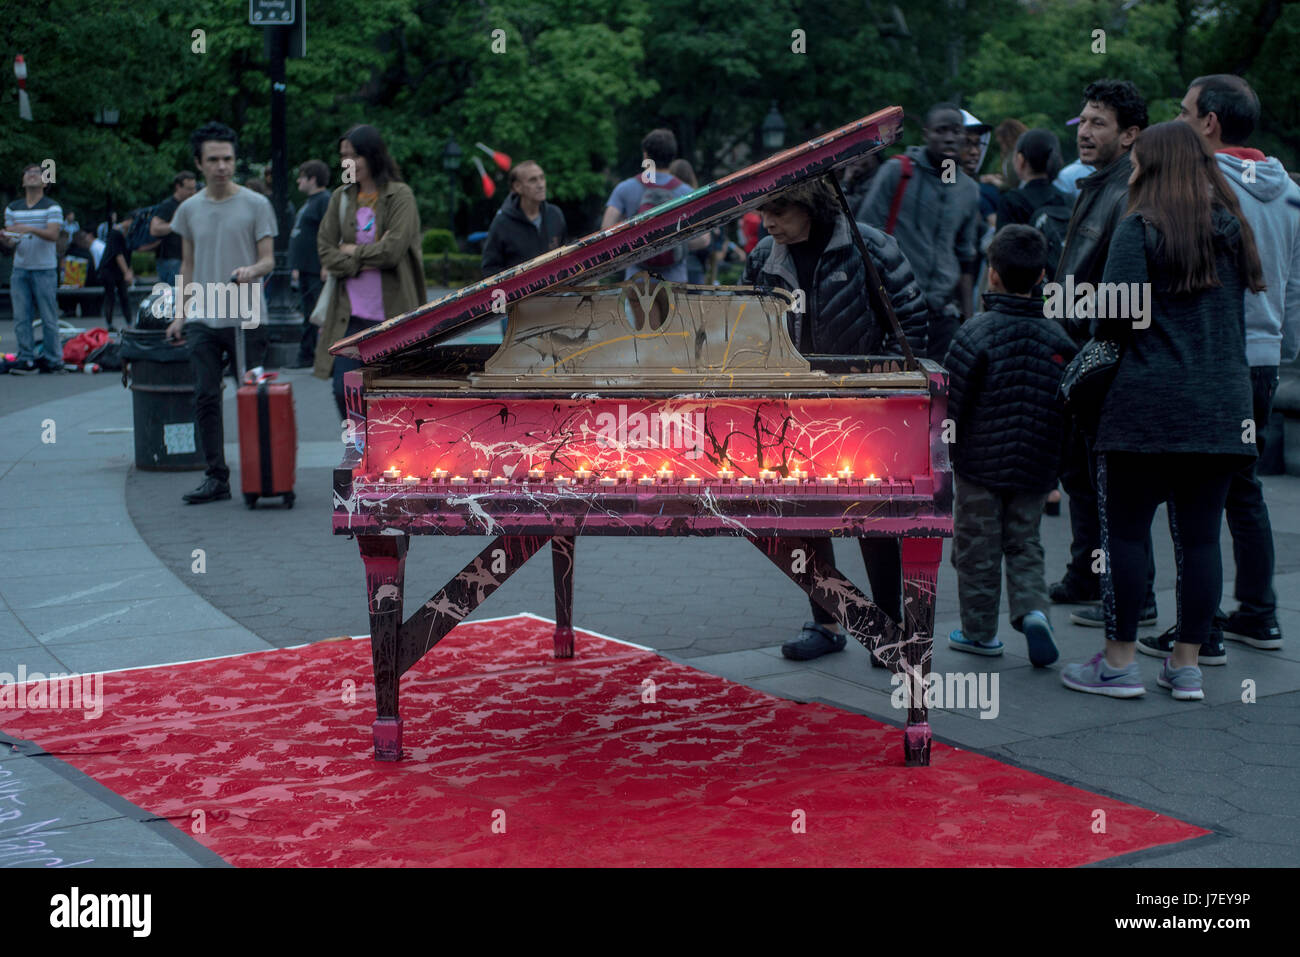 New York, USA 24 May 2014 - Silent Piano, a candlelight memorial for the victims of the Manchester terrorist attack, - Stock Image